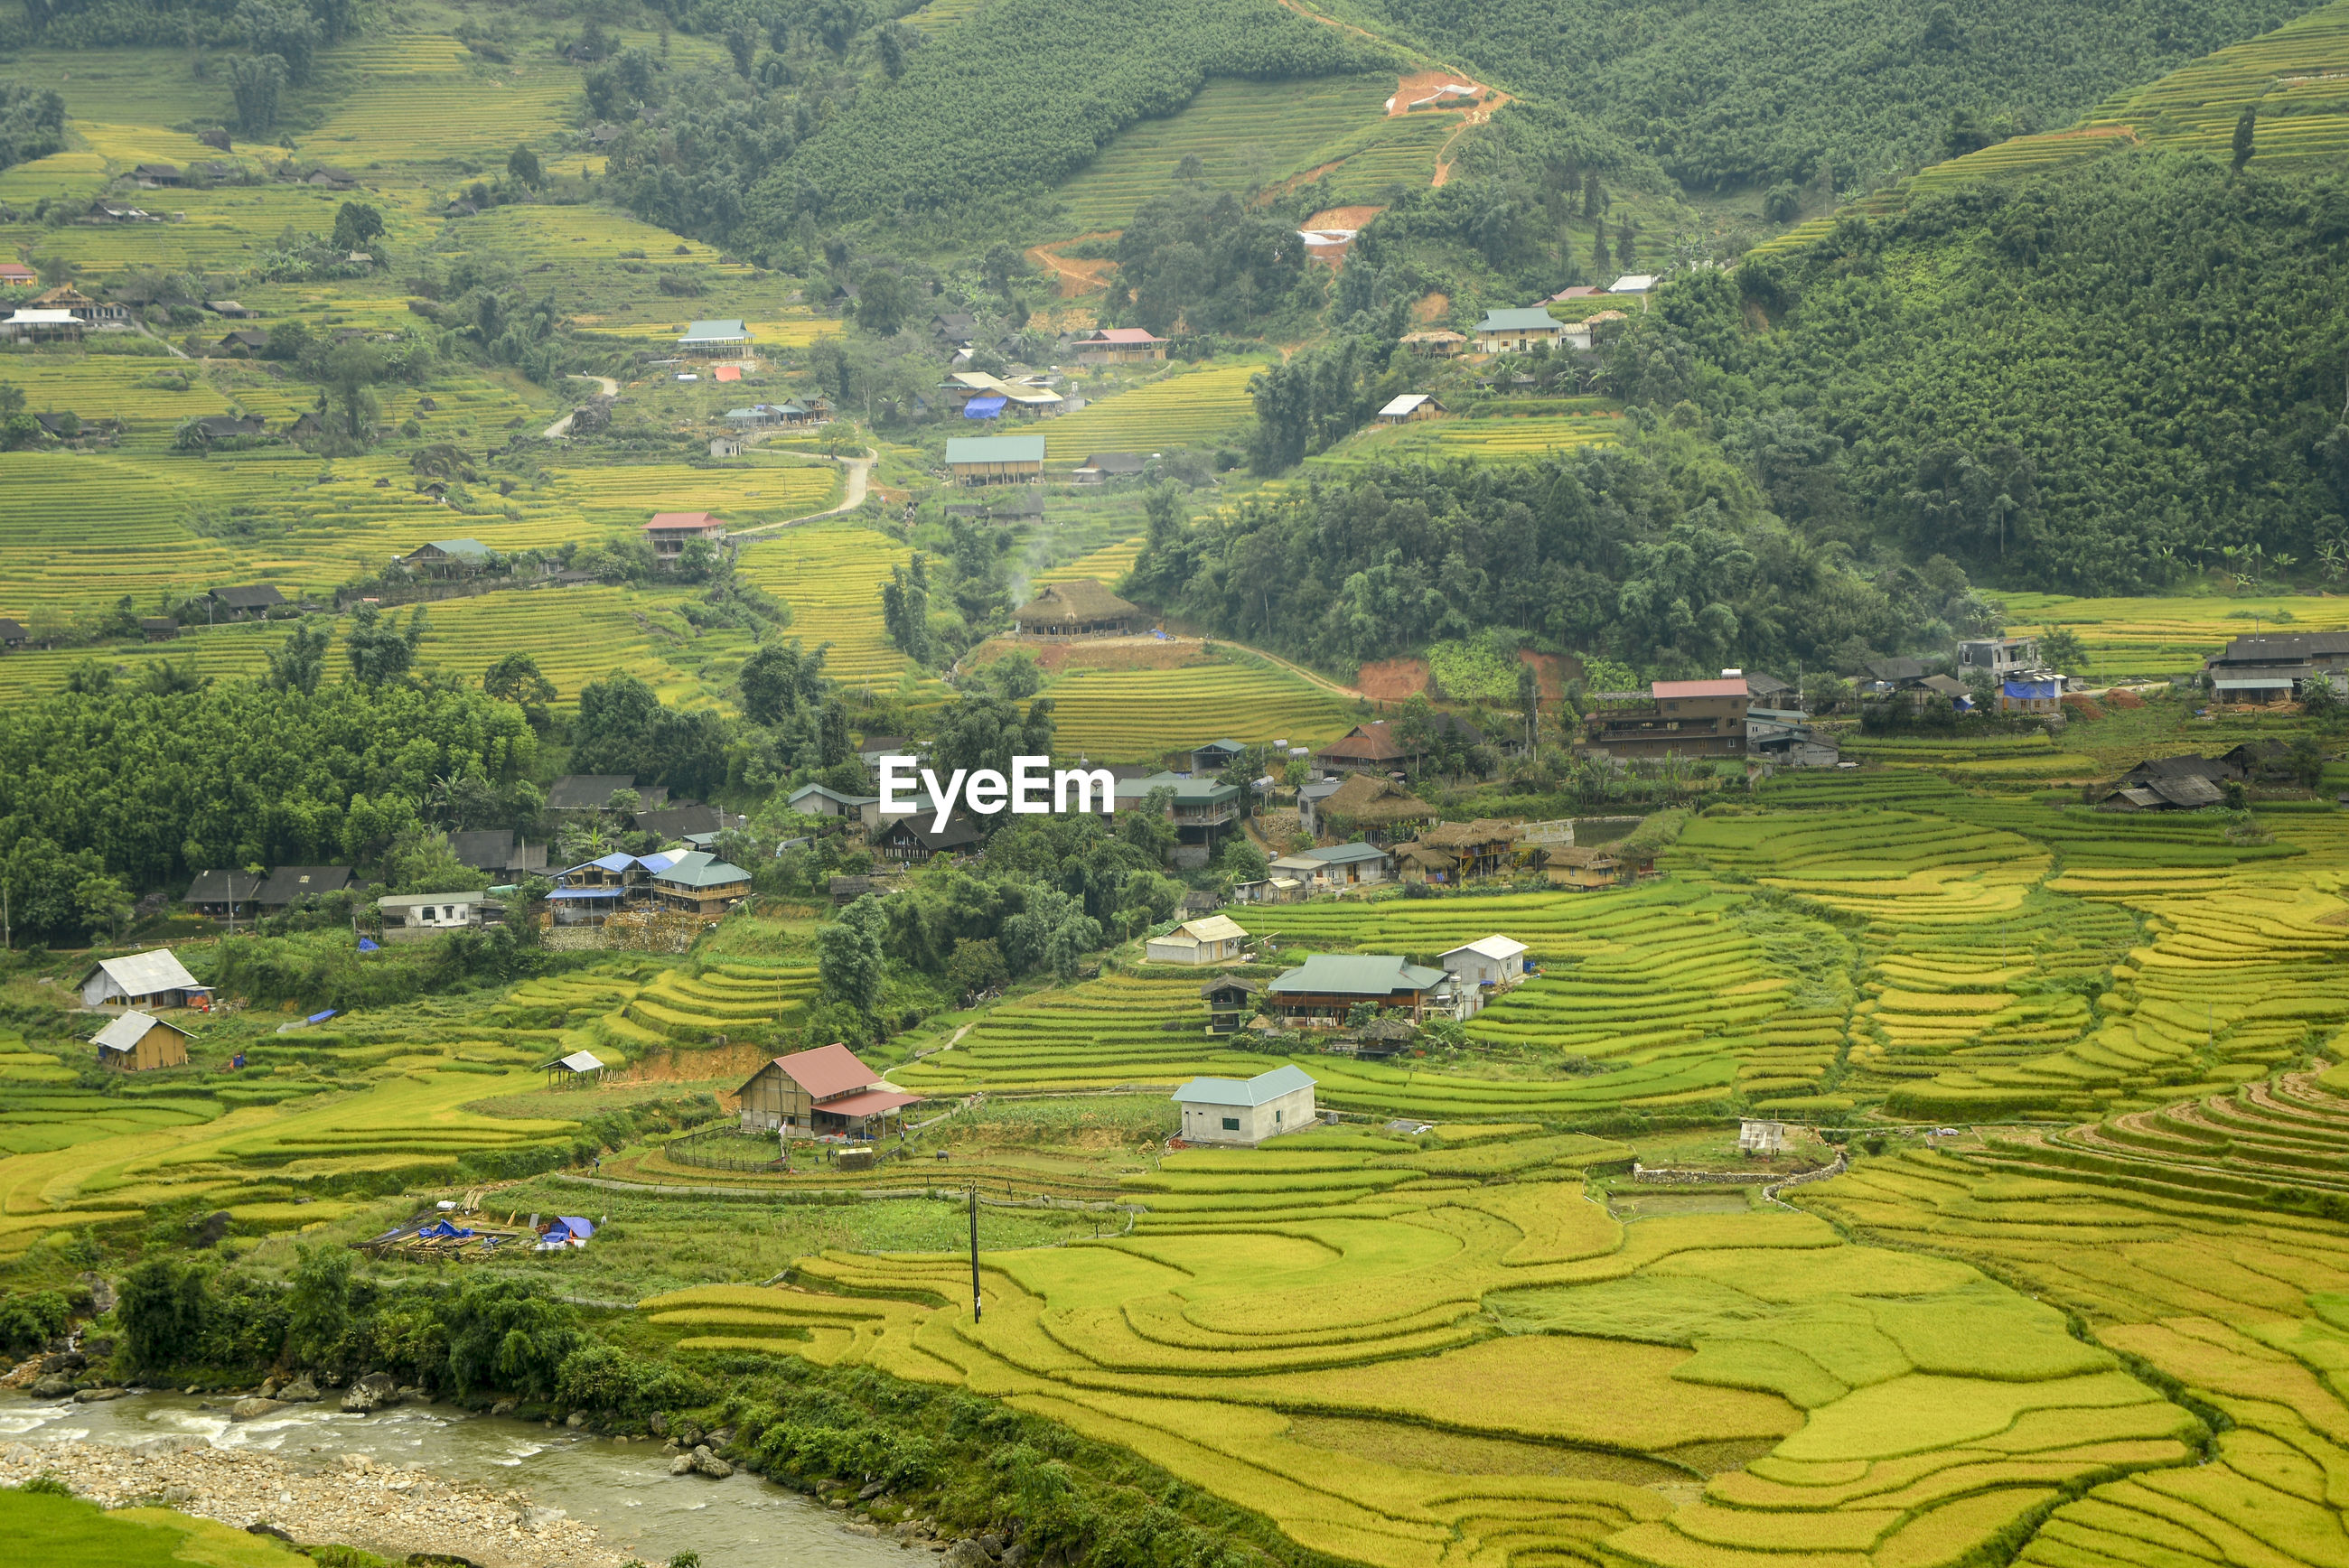 SCENIC VIEW OF AGRICULTURAL FIELD BY HOUSES AND TREE